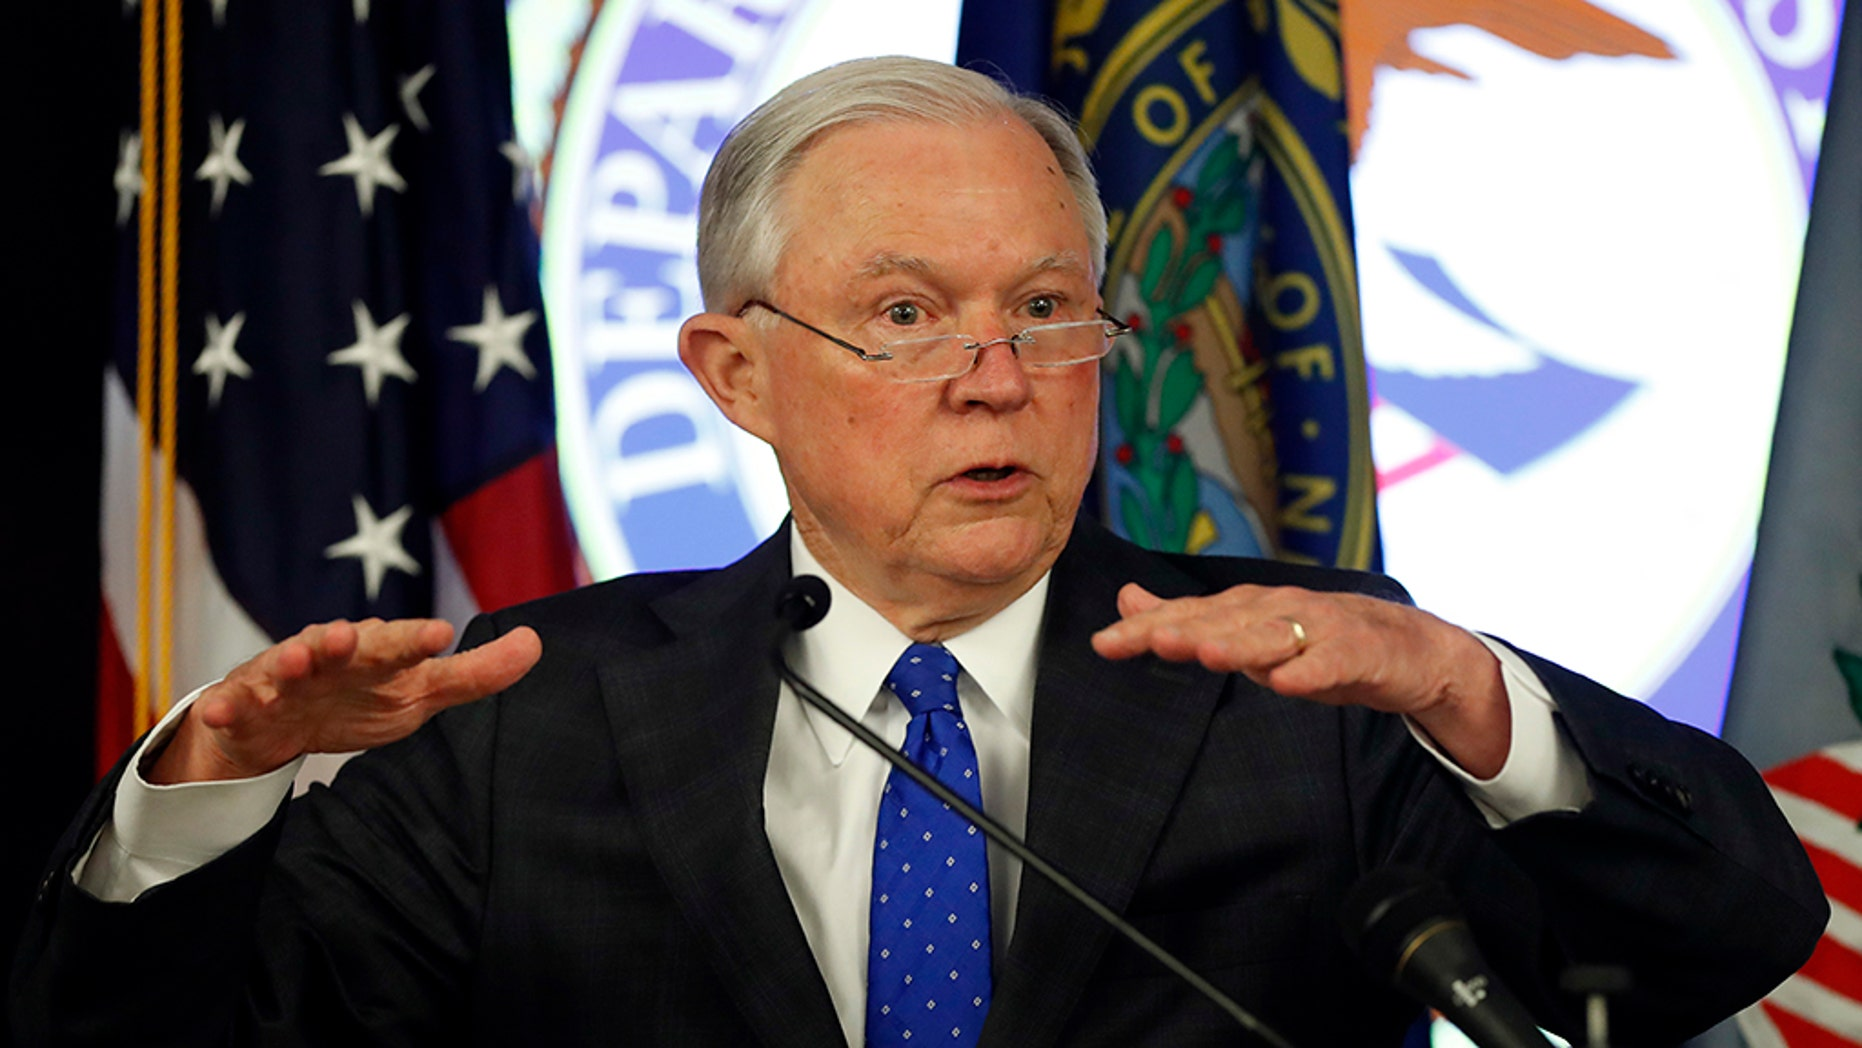 Attorney General Jeff Sessions on Monday excoriated a federal judge for ordering the reinstatement of DACA, saying he had exceeded his authority.